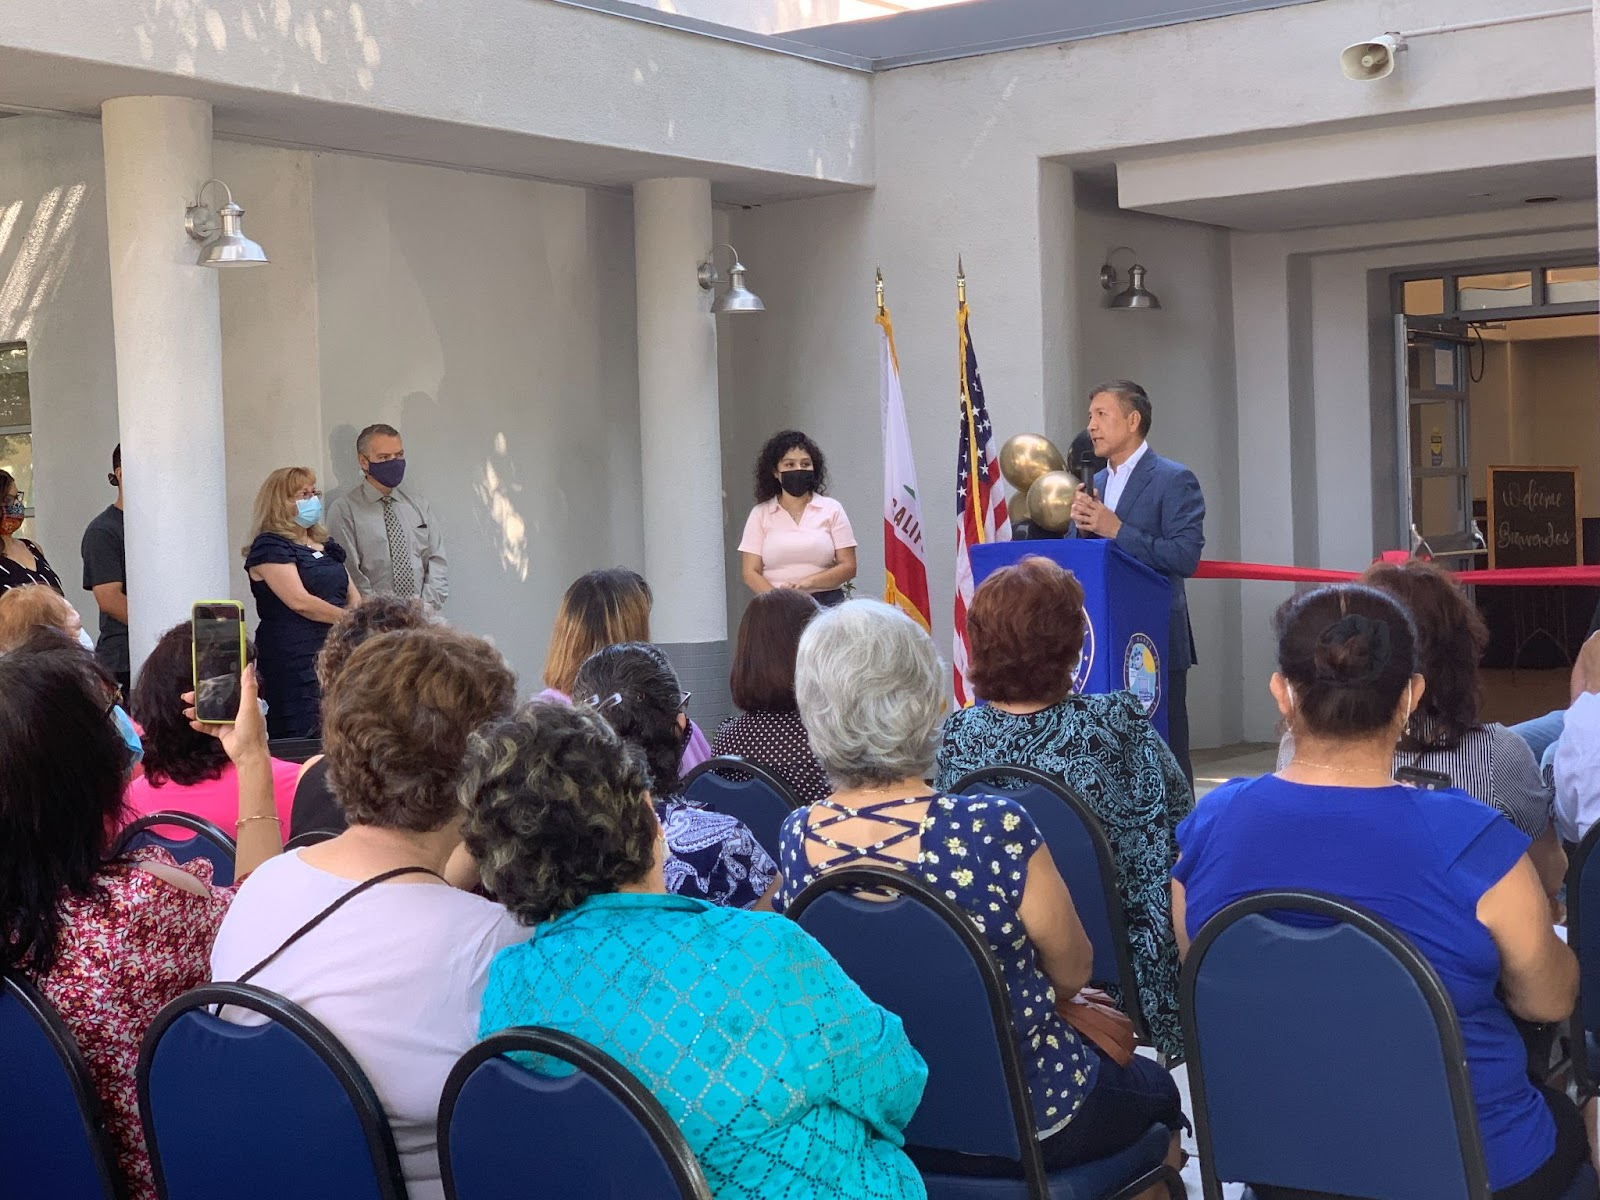 Mayor Sarmiento giving a speech at the opening ceremony for the Southwest Senior Center